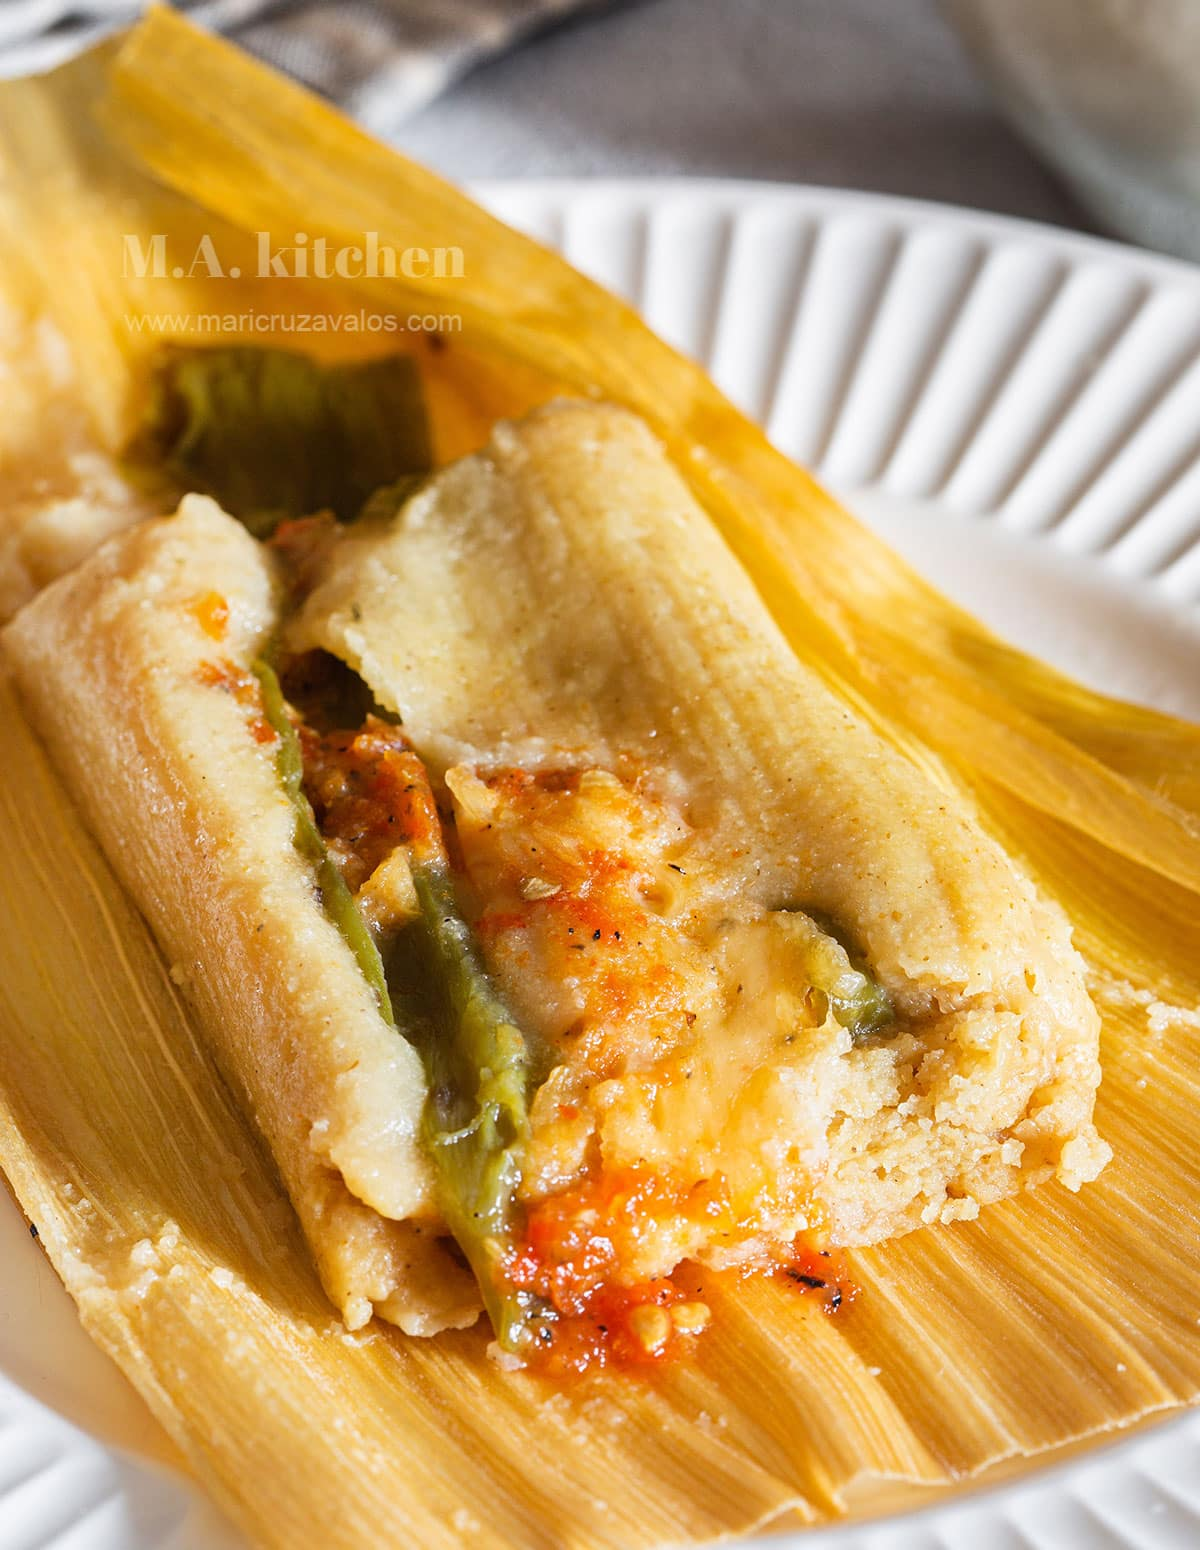 Tamales de rajas close up showing the fluffy and moist texture and the cheese filling.